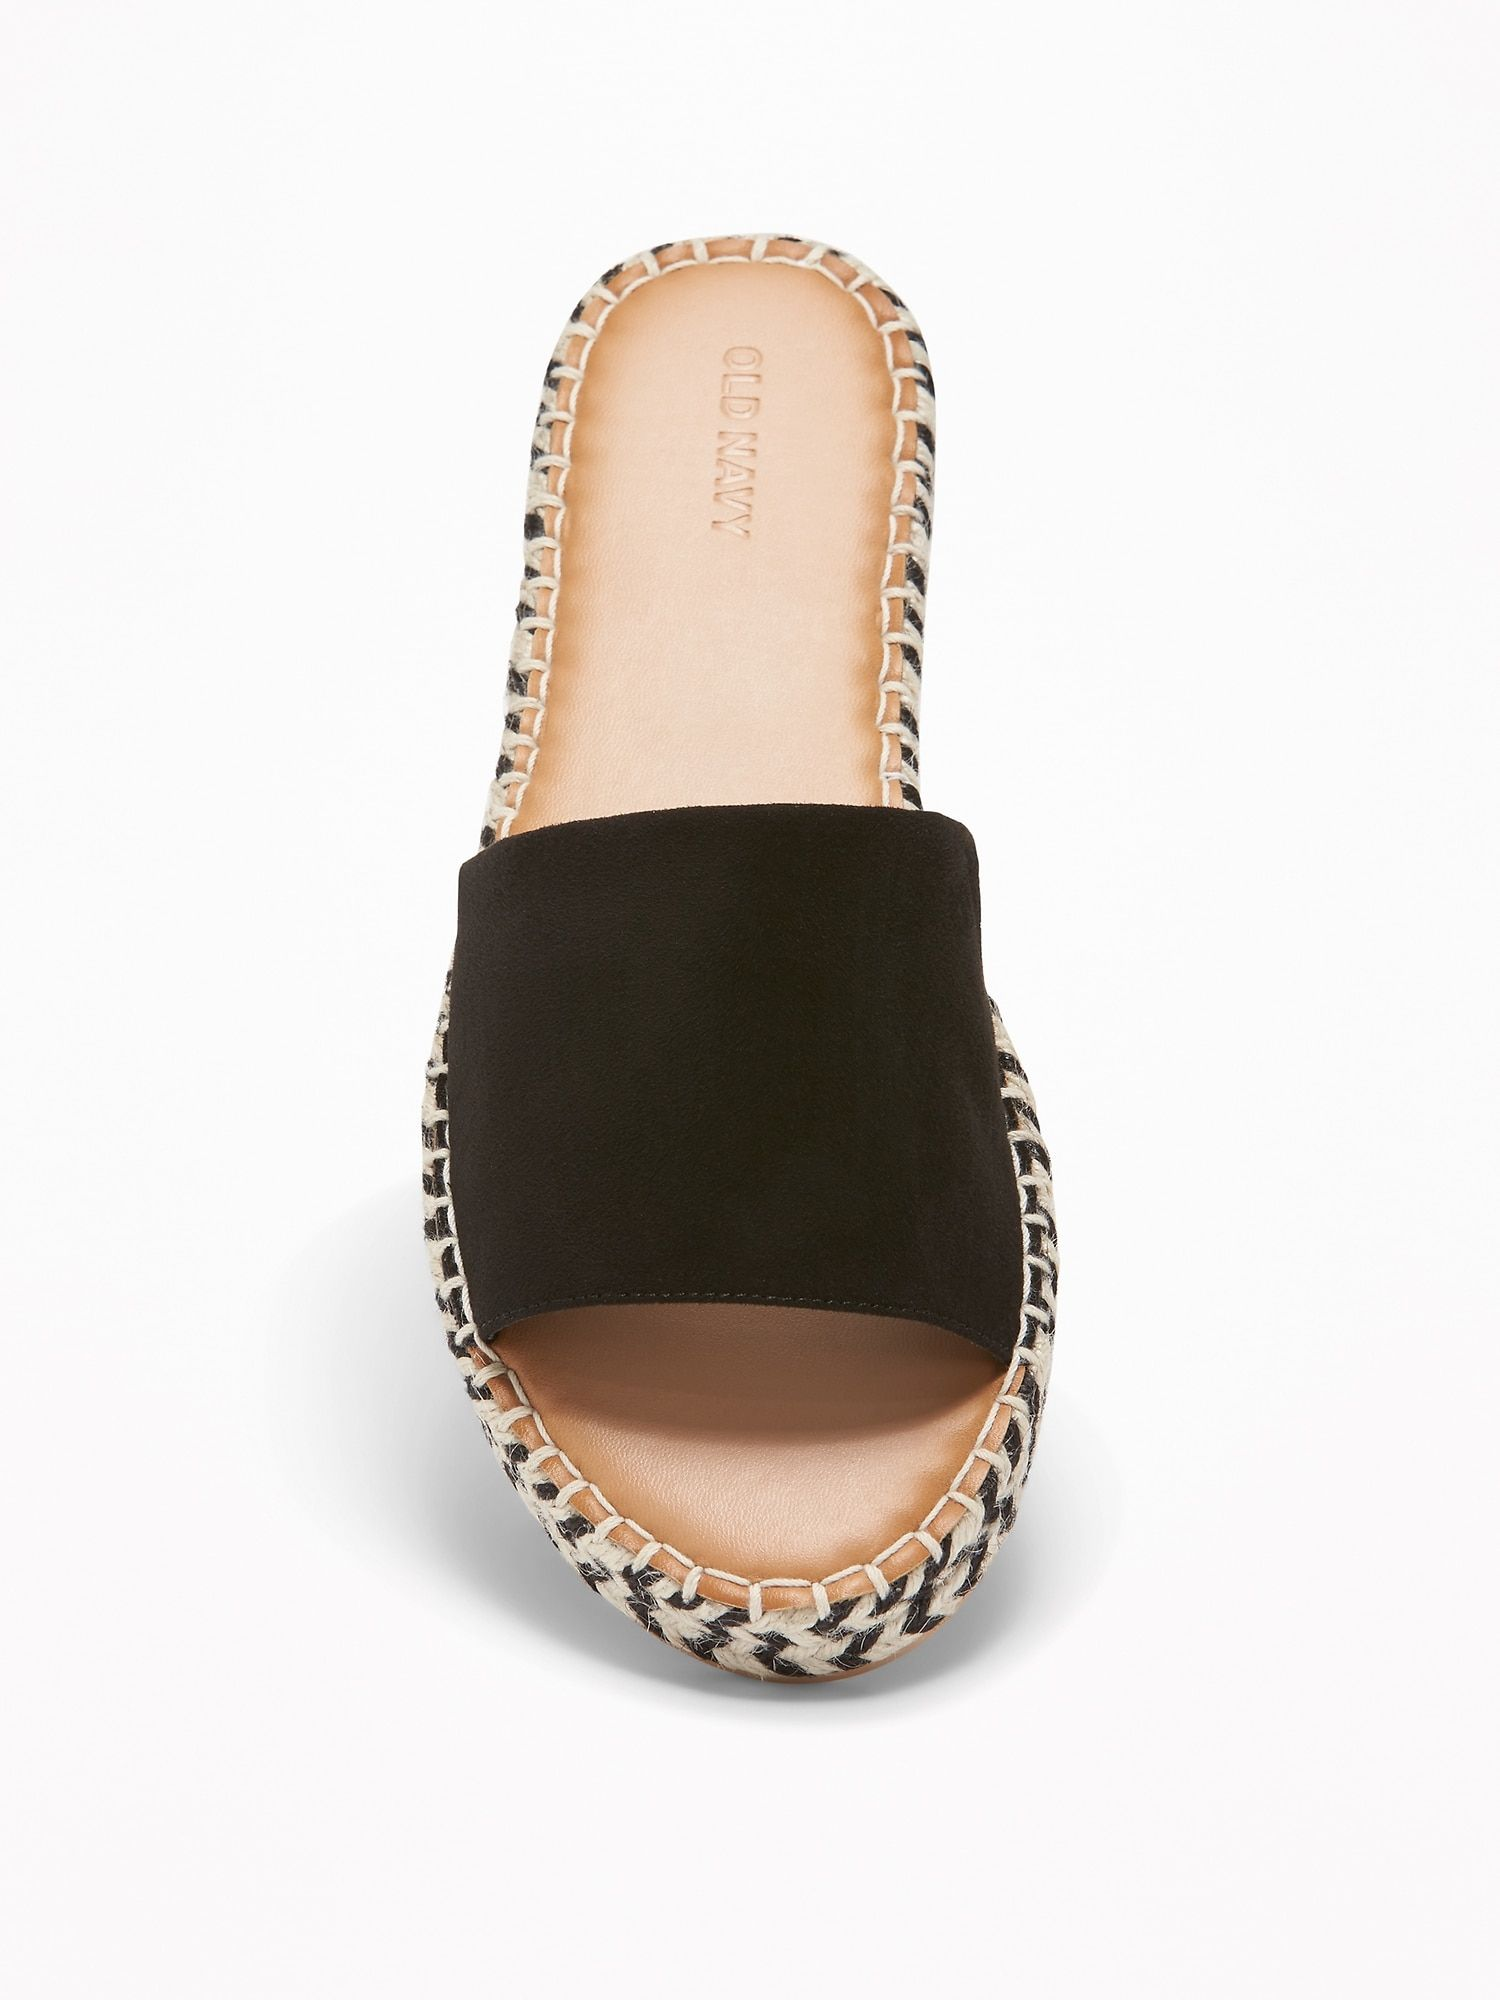 FauxSuede Slide Espadrille Sandals for Women Old Navy